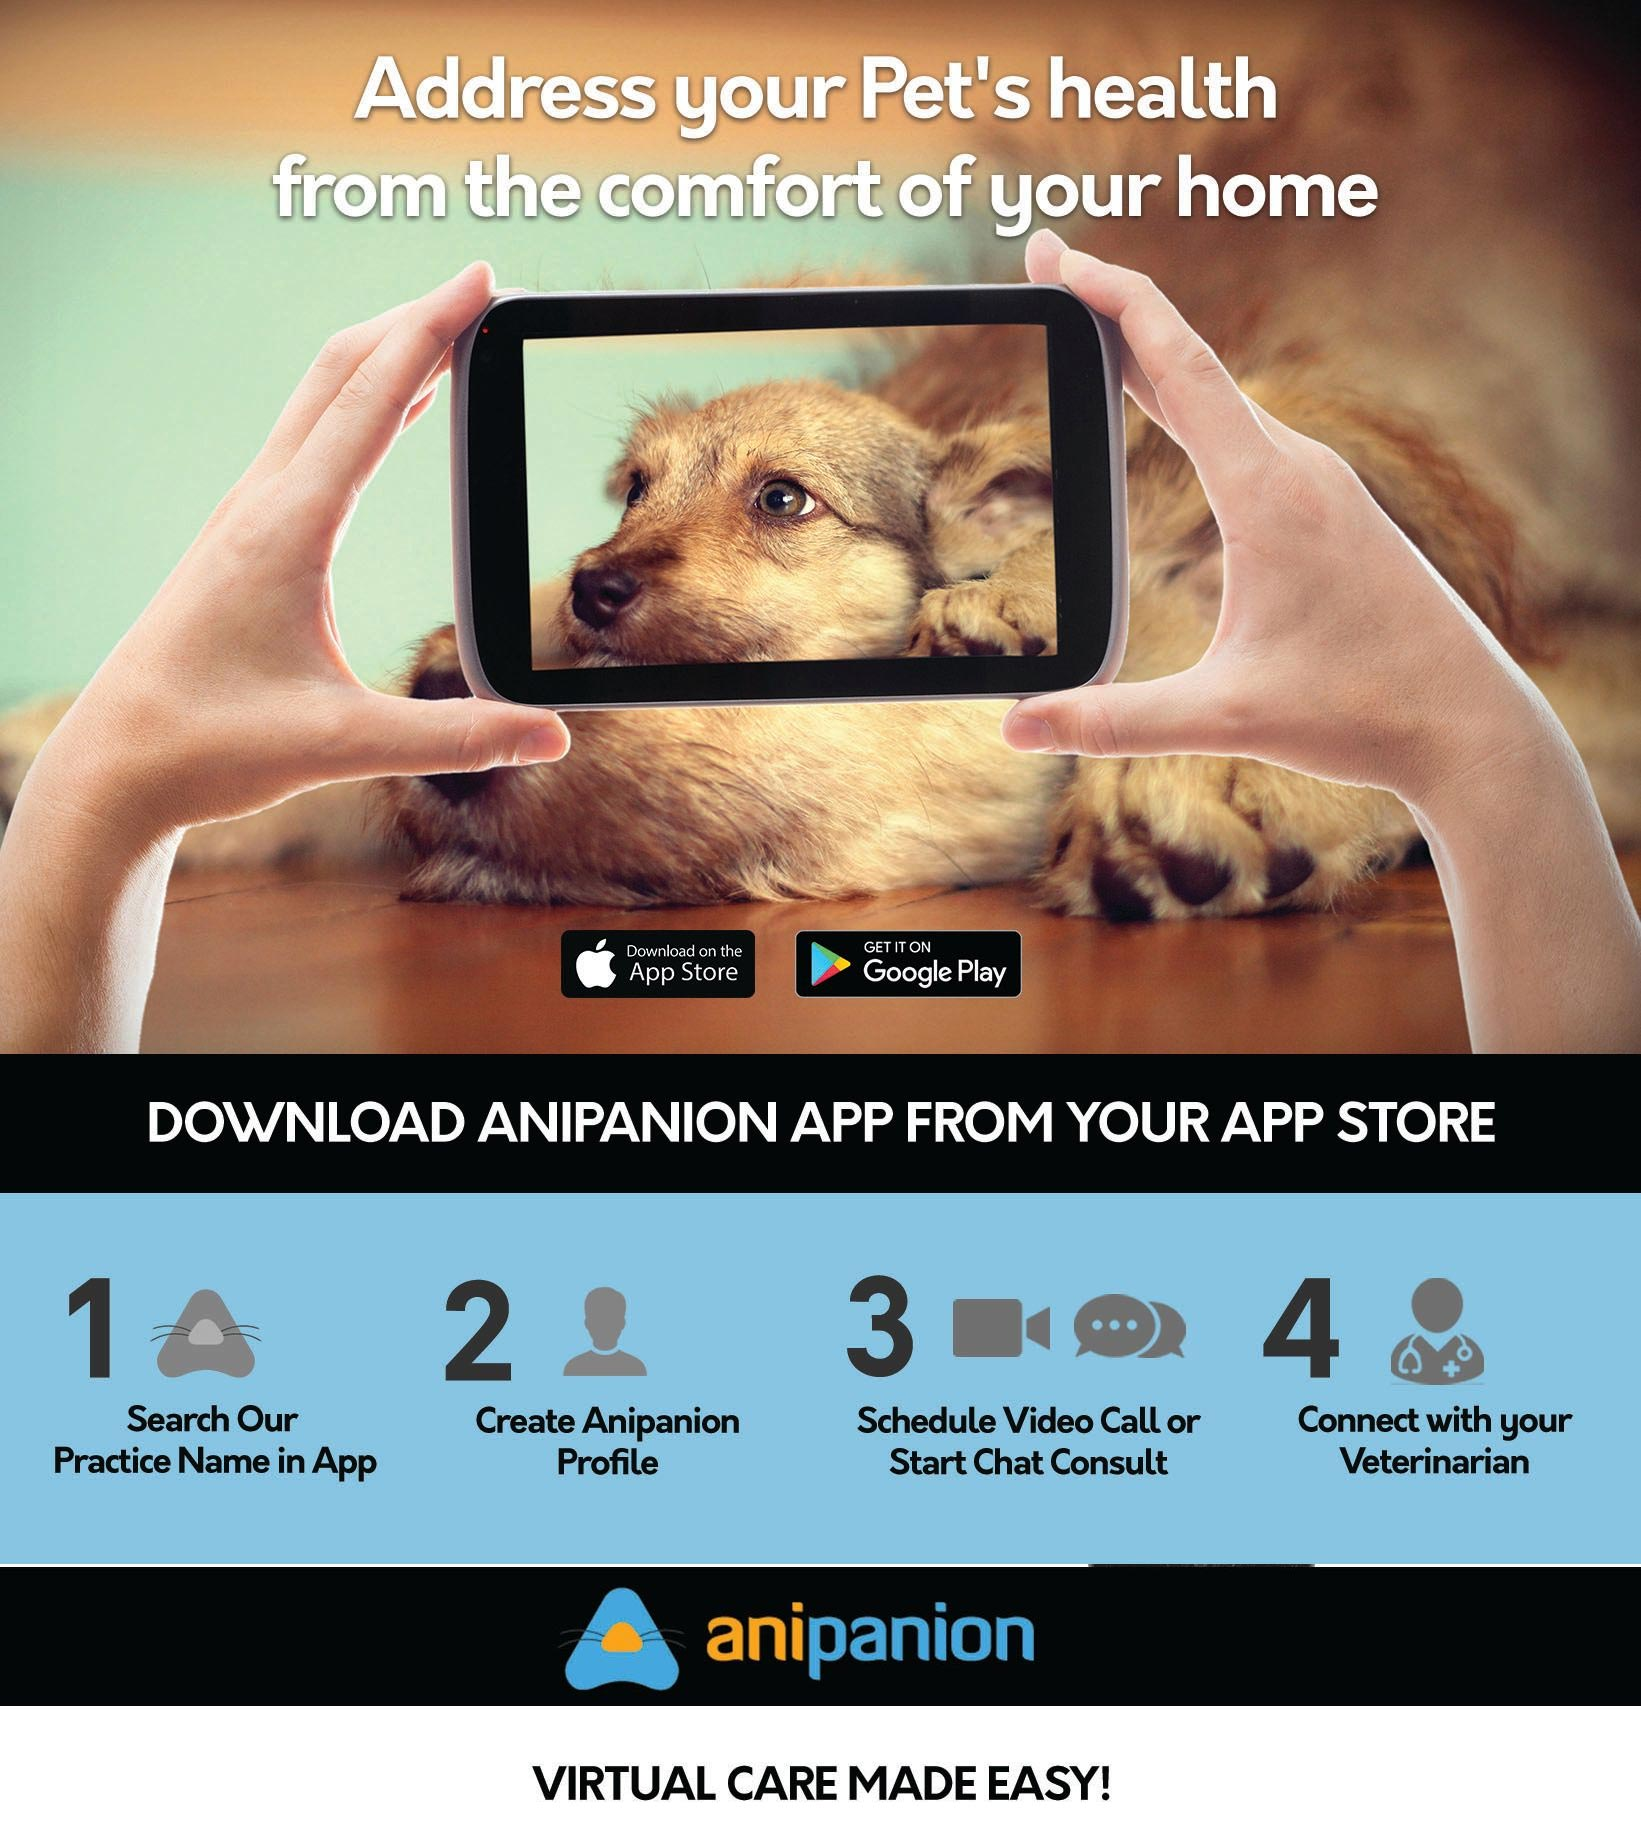 Download Anipanion App from App Store or Google Play